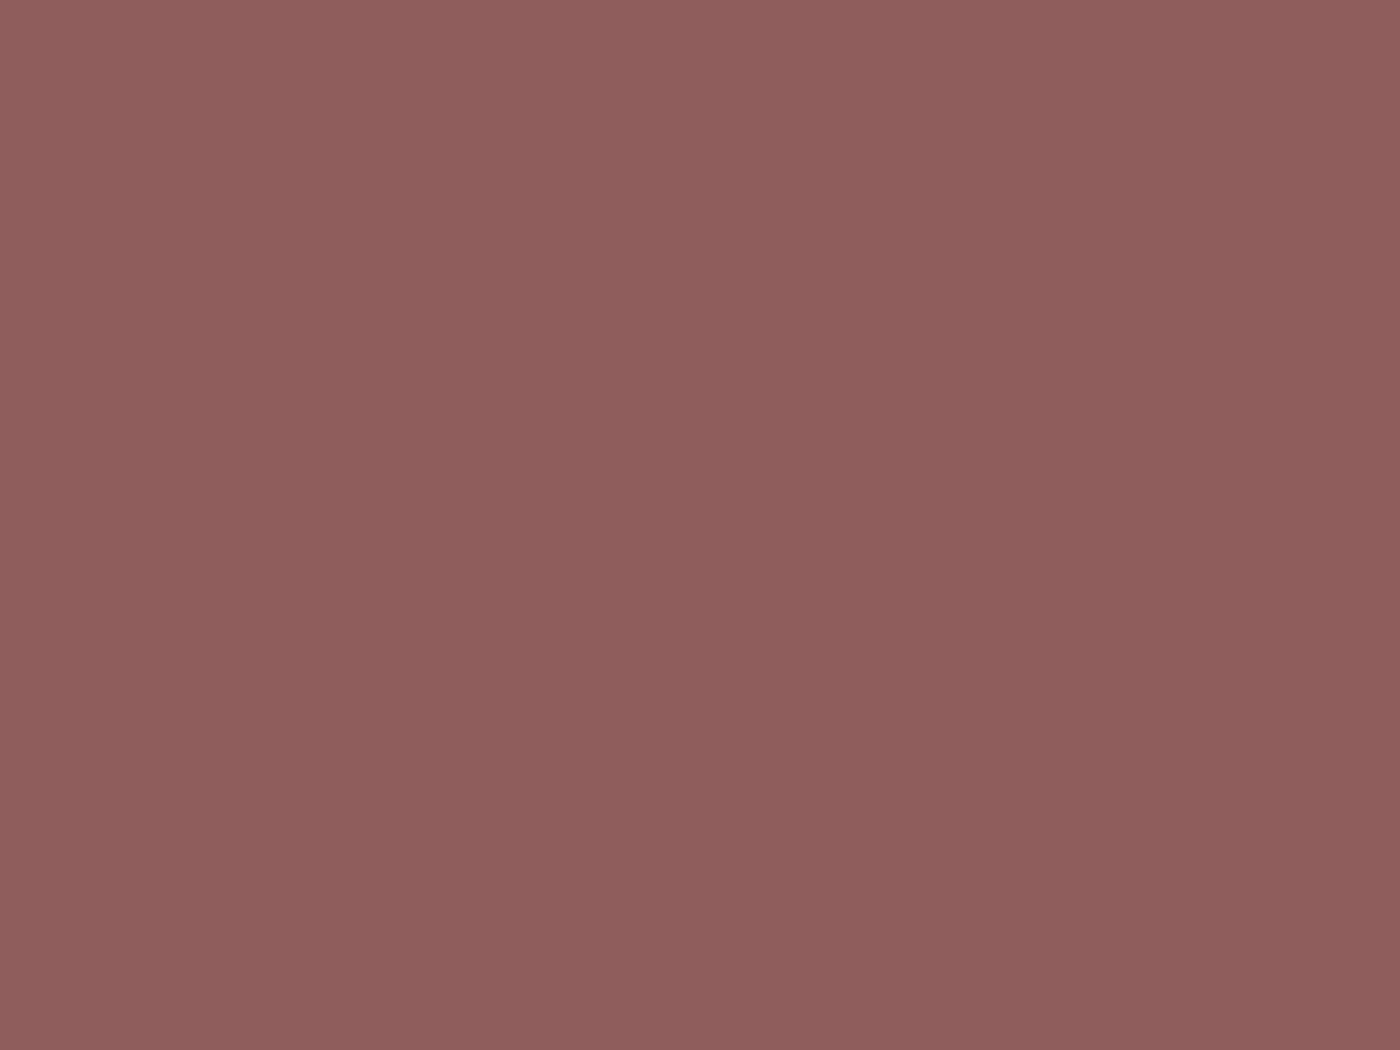 1400x1050 Rose Taupe Solid Color Background